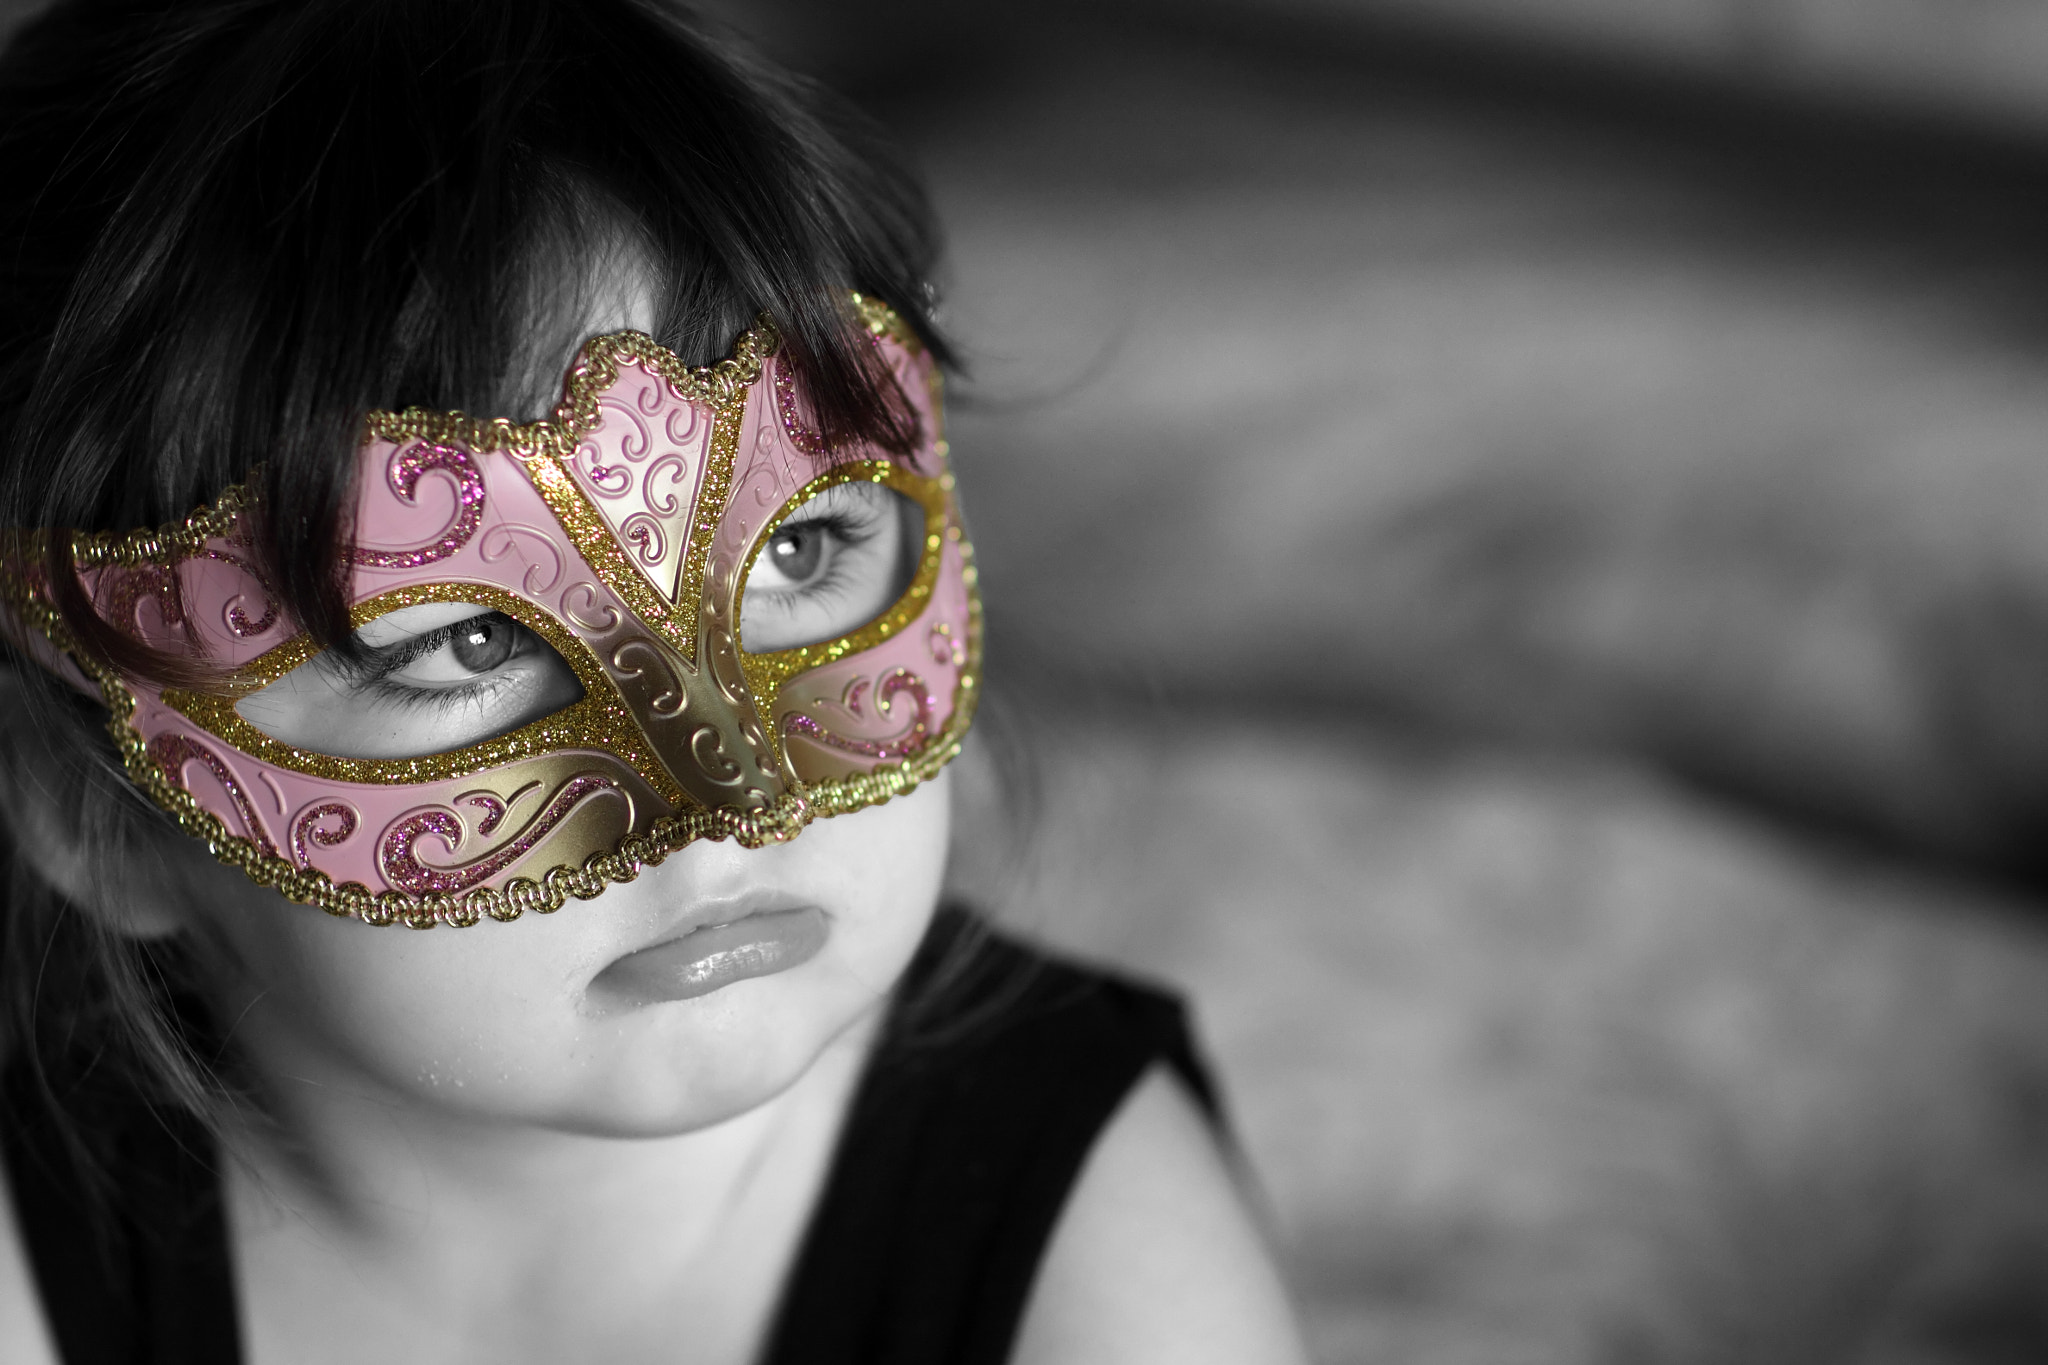 Photograph The Masquerade Girl by Michael Elford on 500px